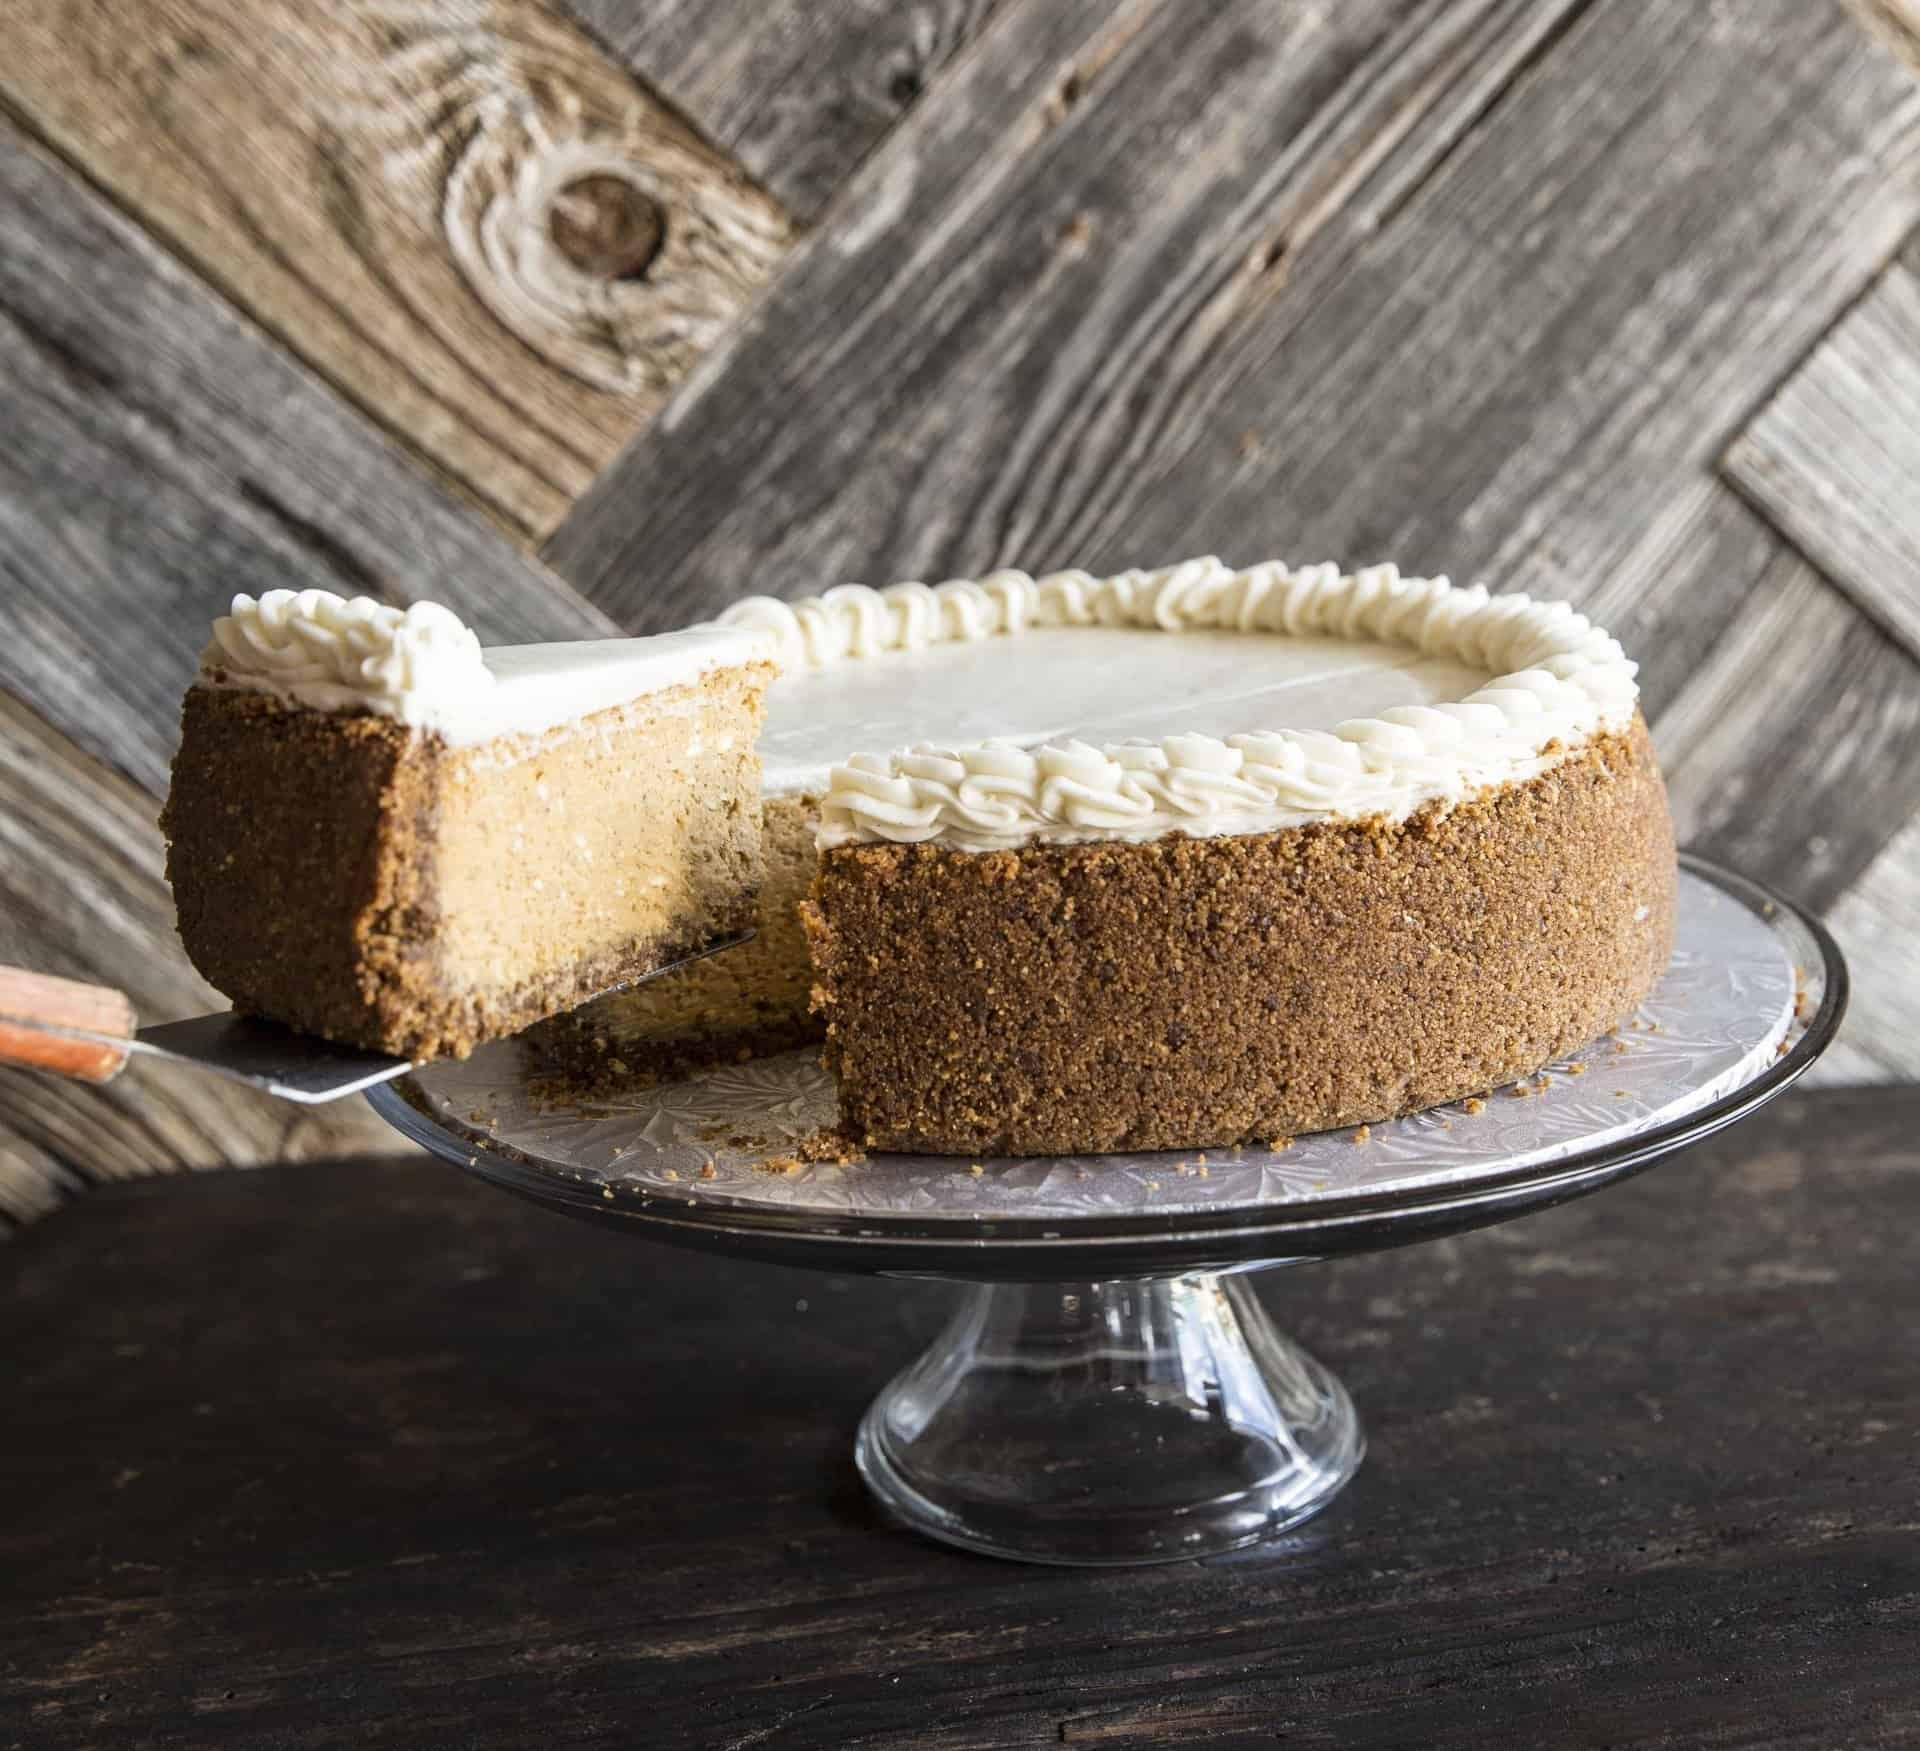 Petite Sweets' Pumpkin Cheesecake